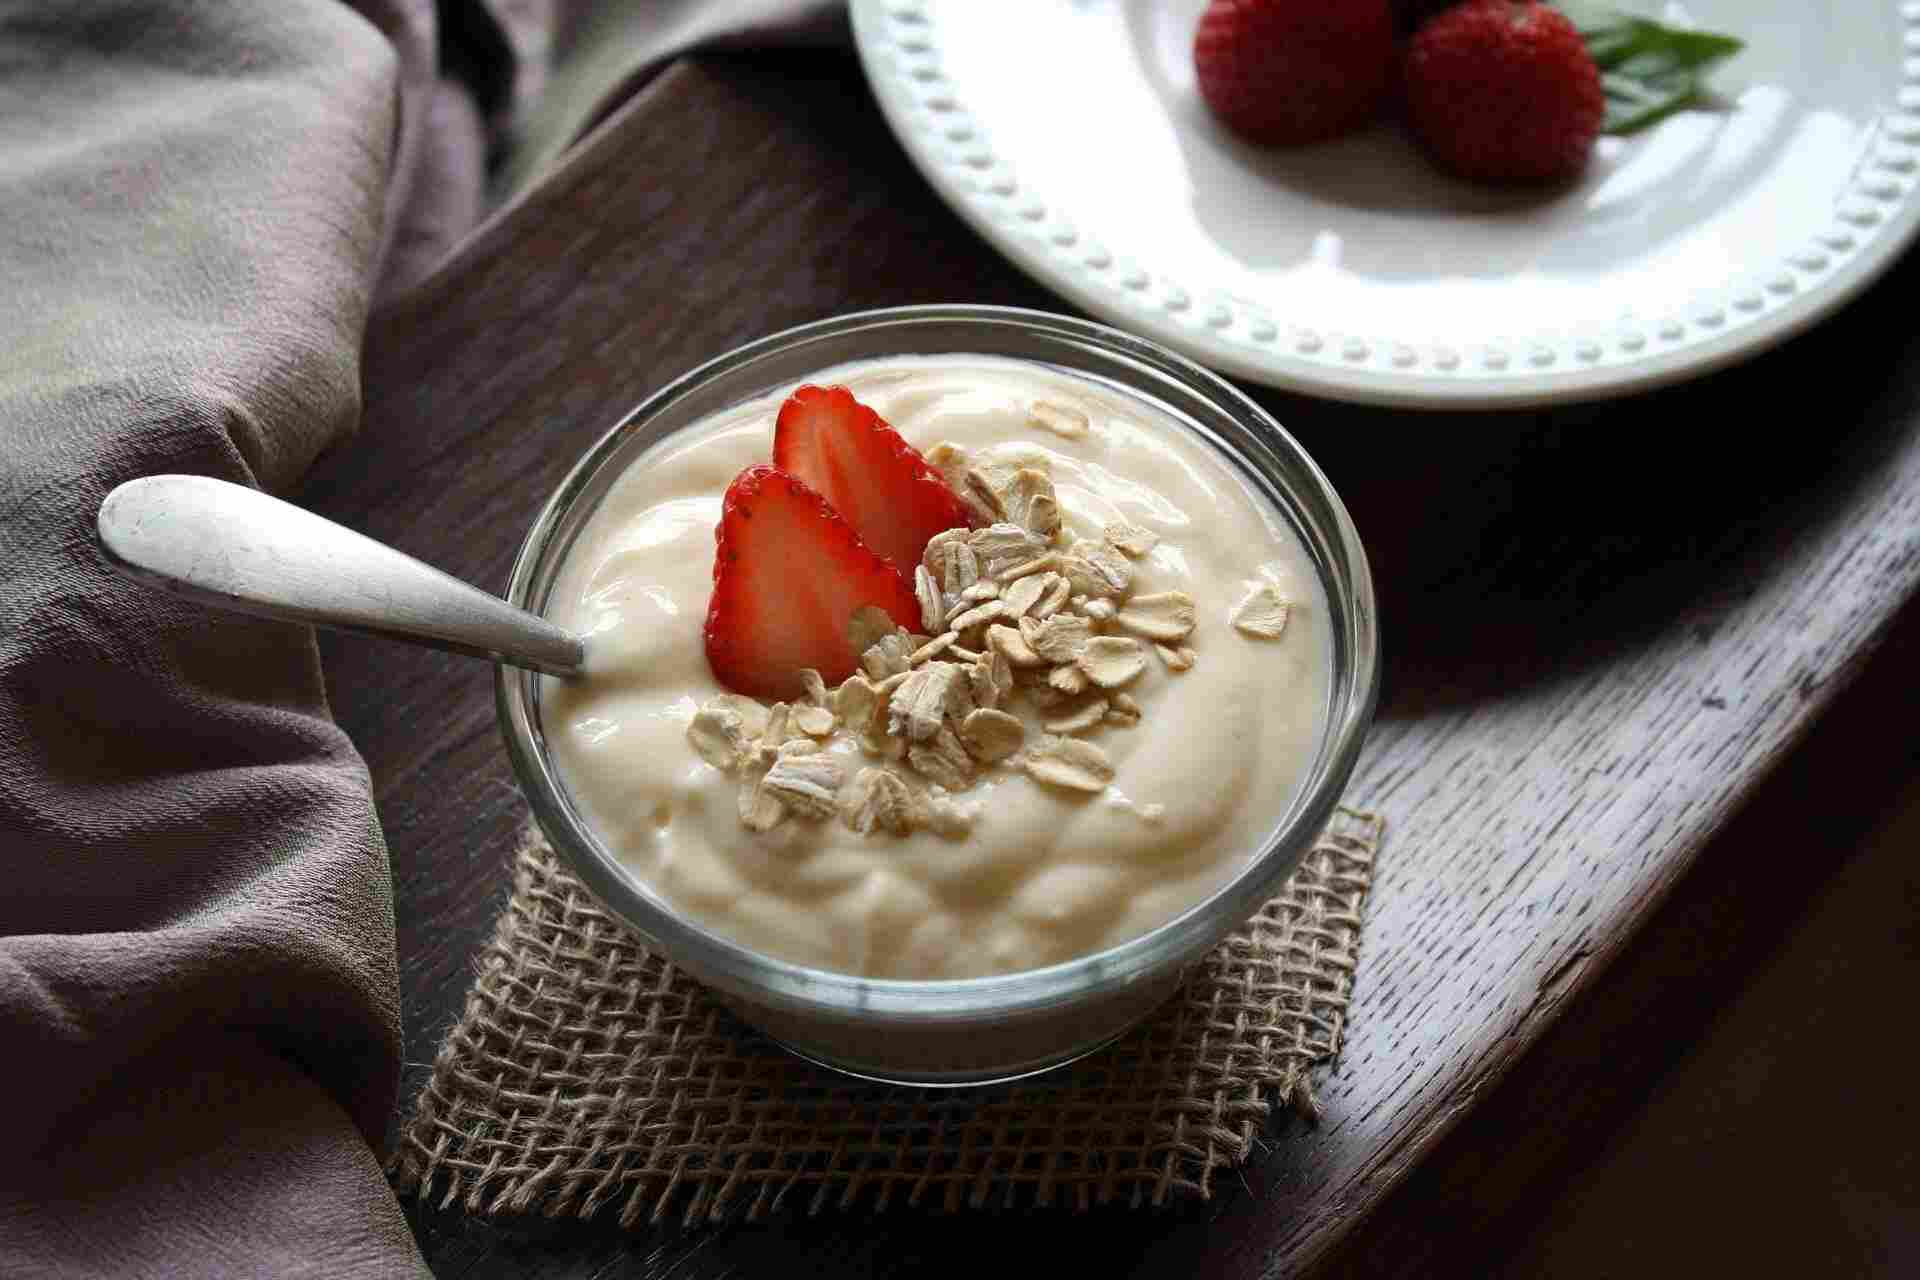 a bowl of yogurt and strawberries